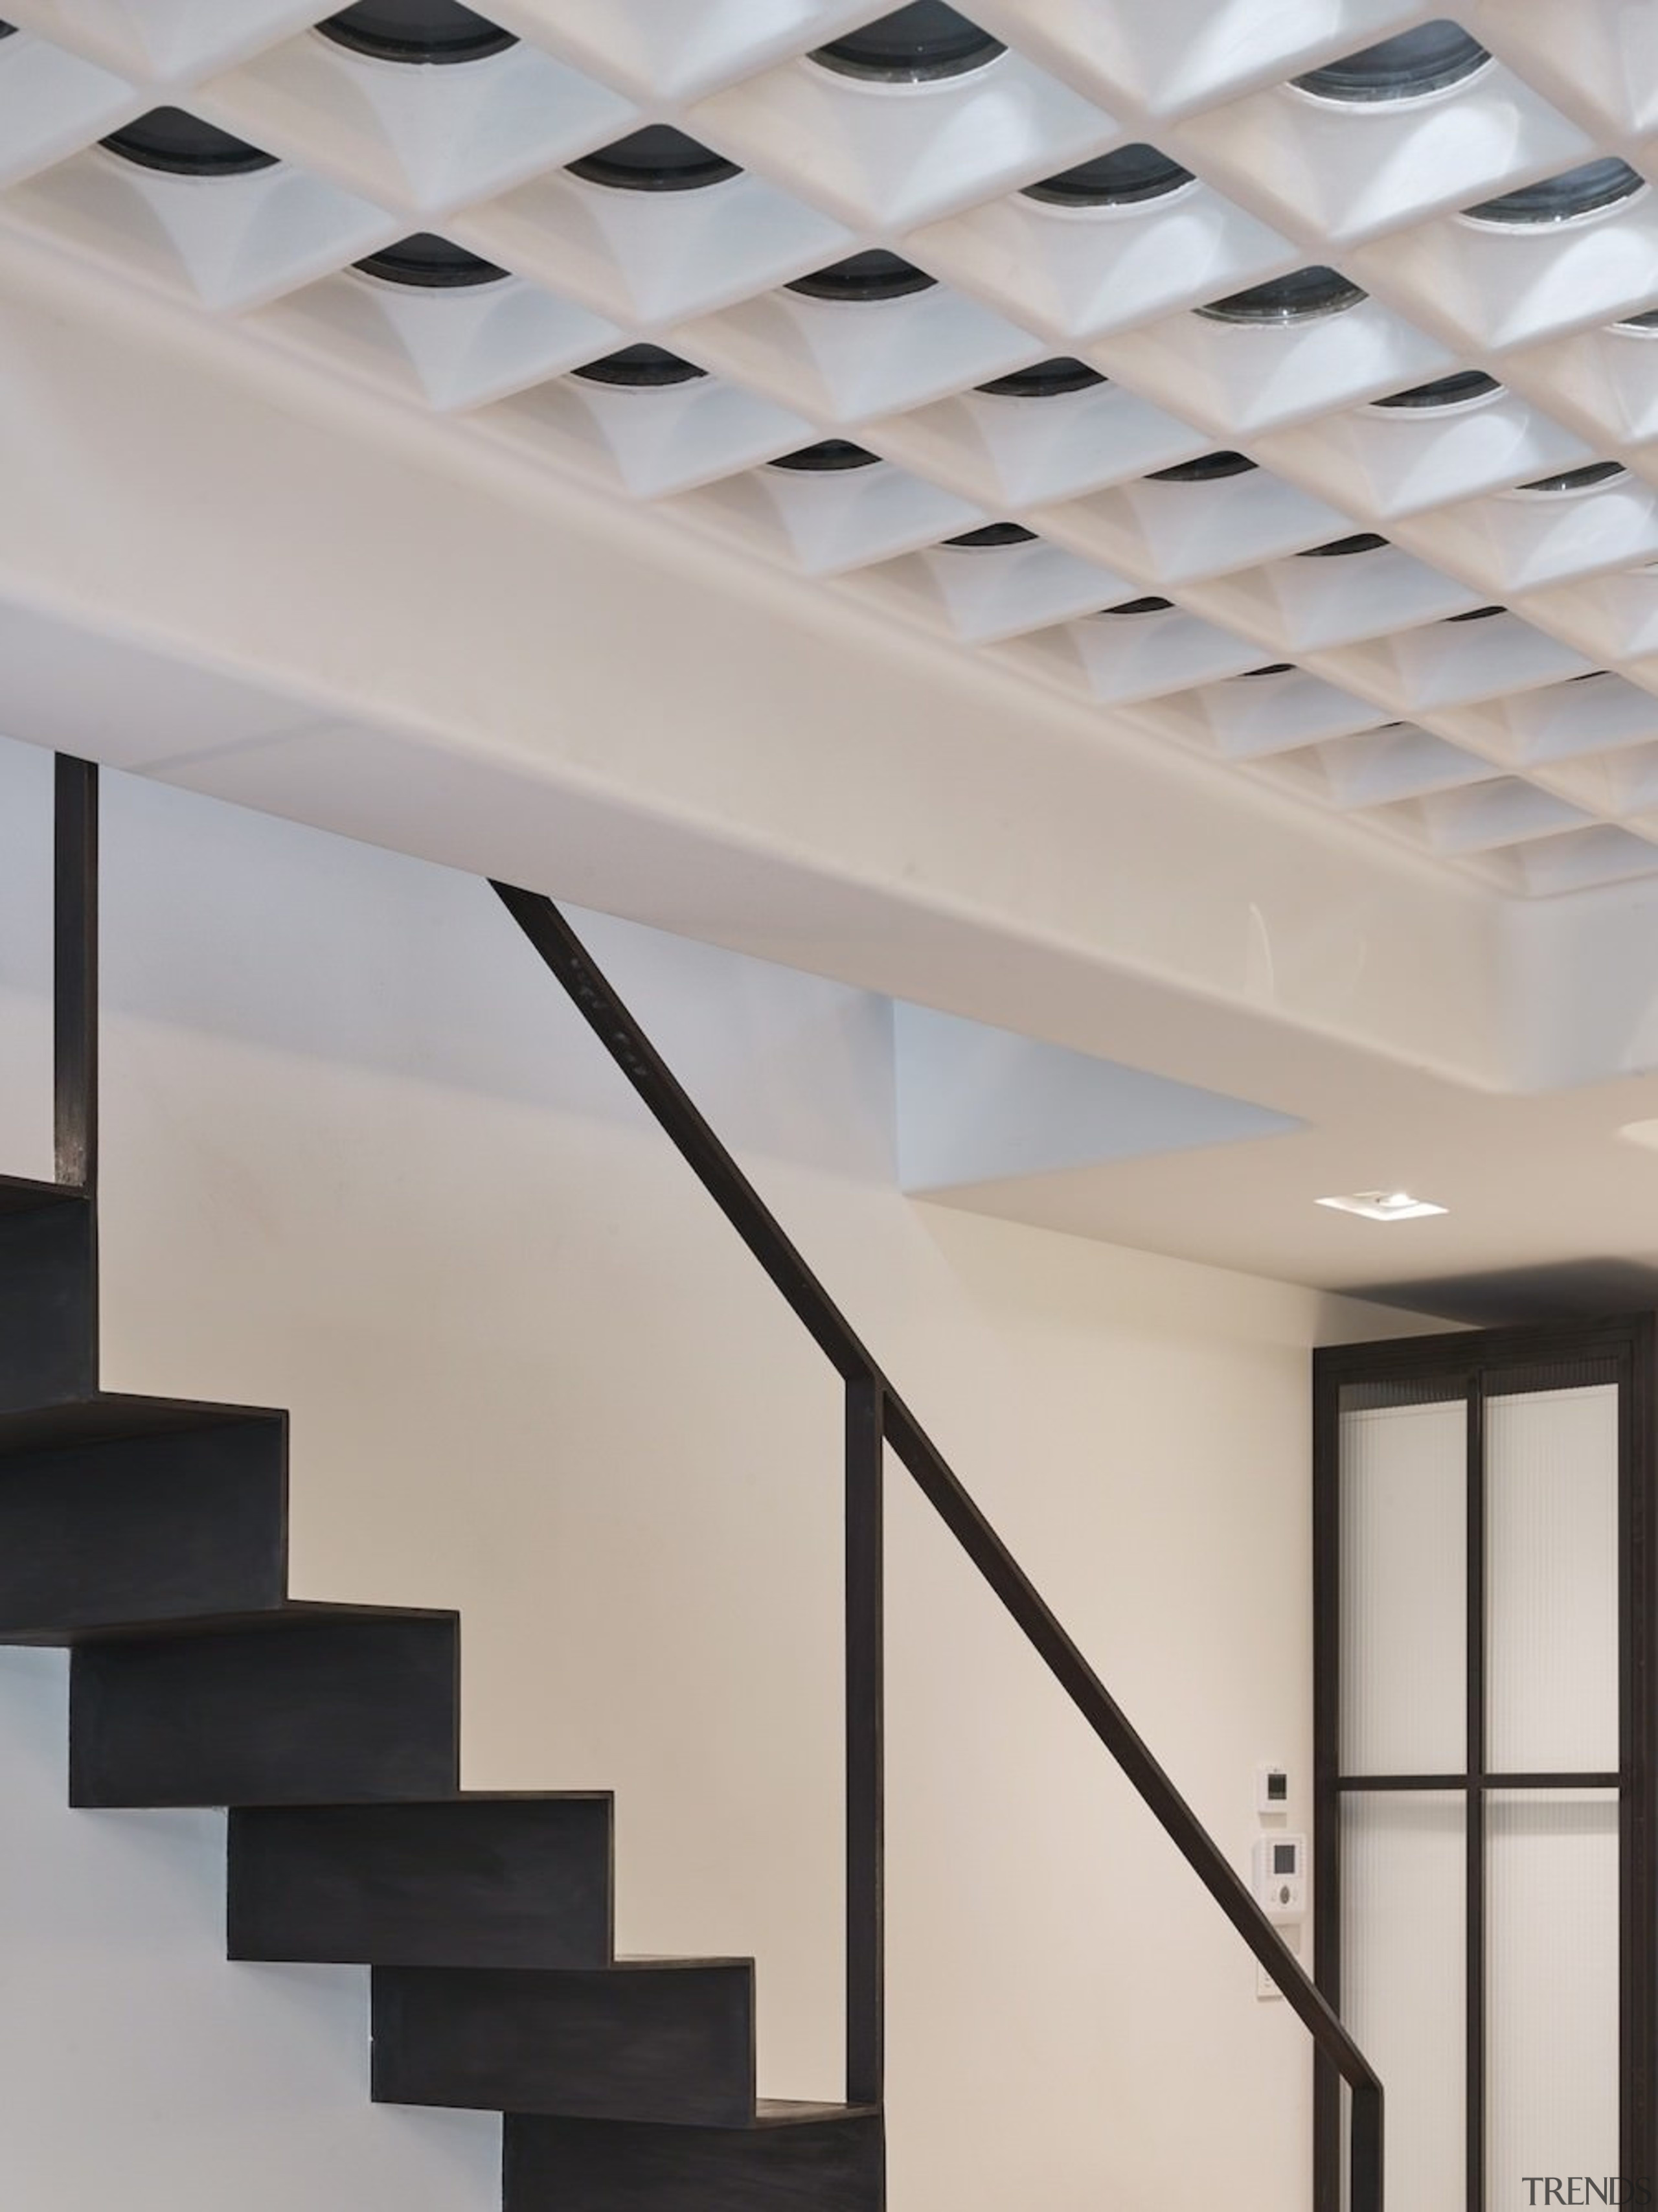 Andy Martin Architecture – Renovation in London - architecture, ceiling, daylighting, handrail, interior design, lighting, product design, structure, gray